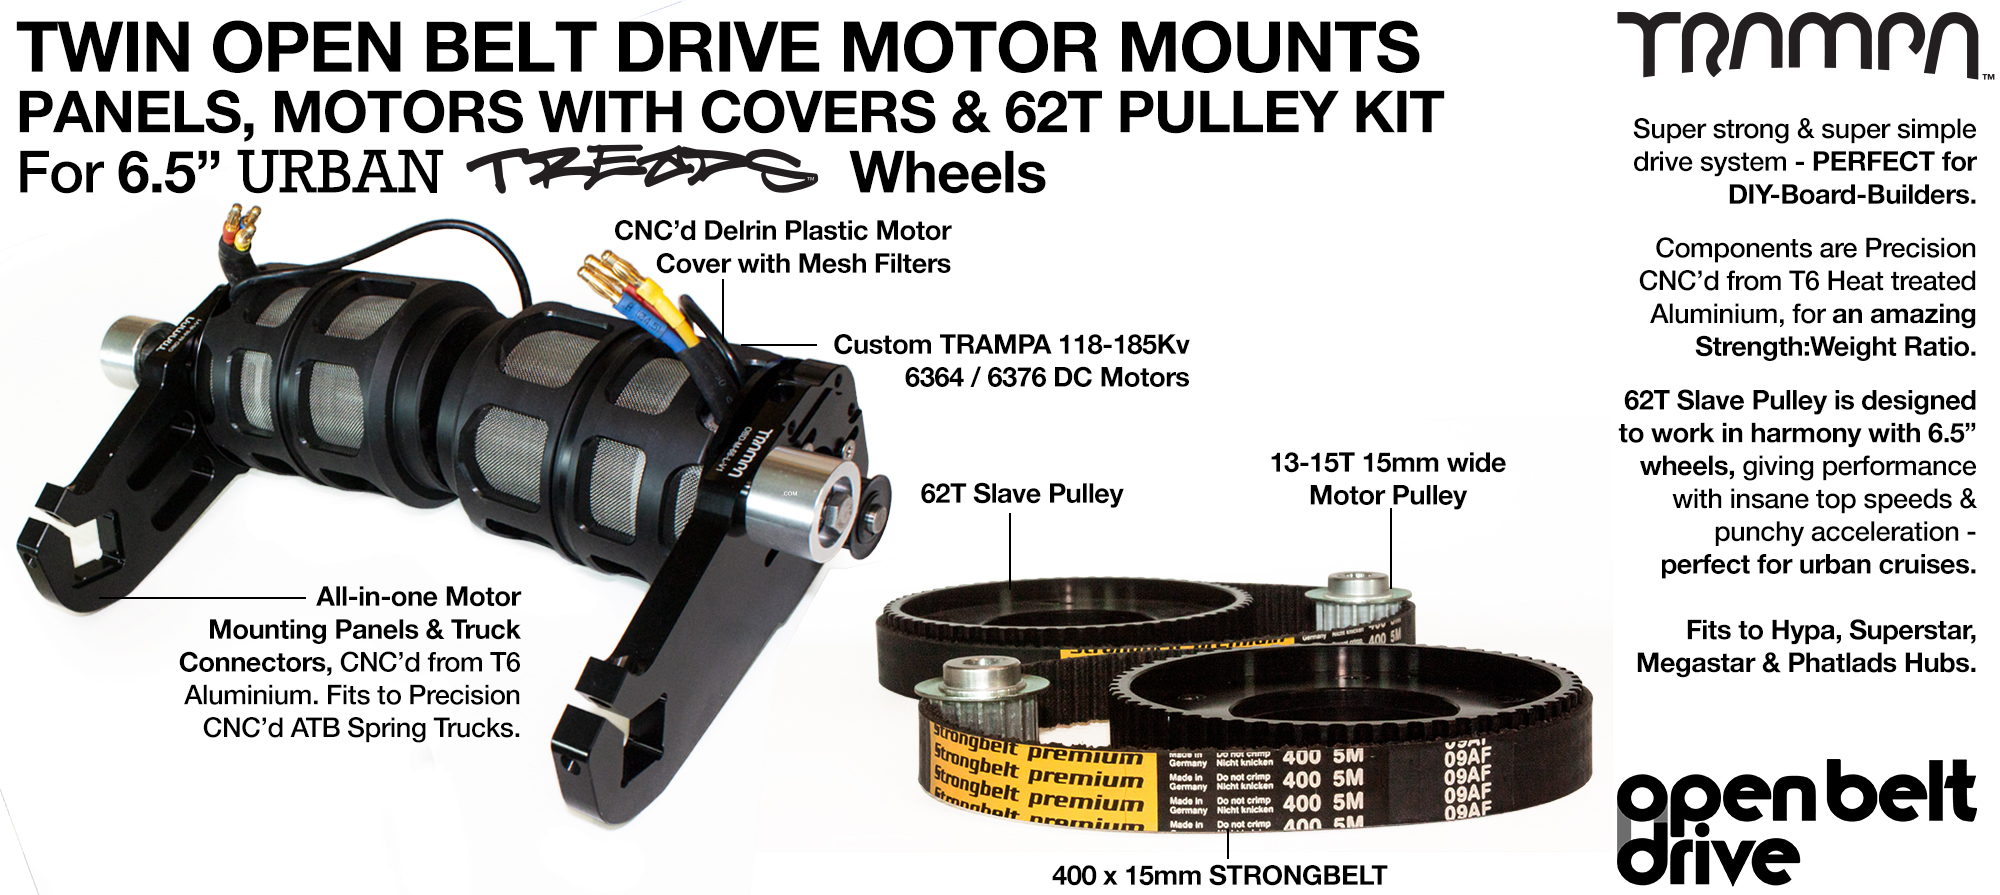 66T OBD Motor Mount with 62T Pulley kit, Motor & Filters  - TWIN